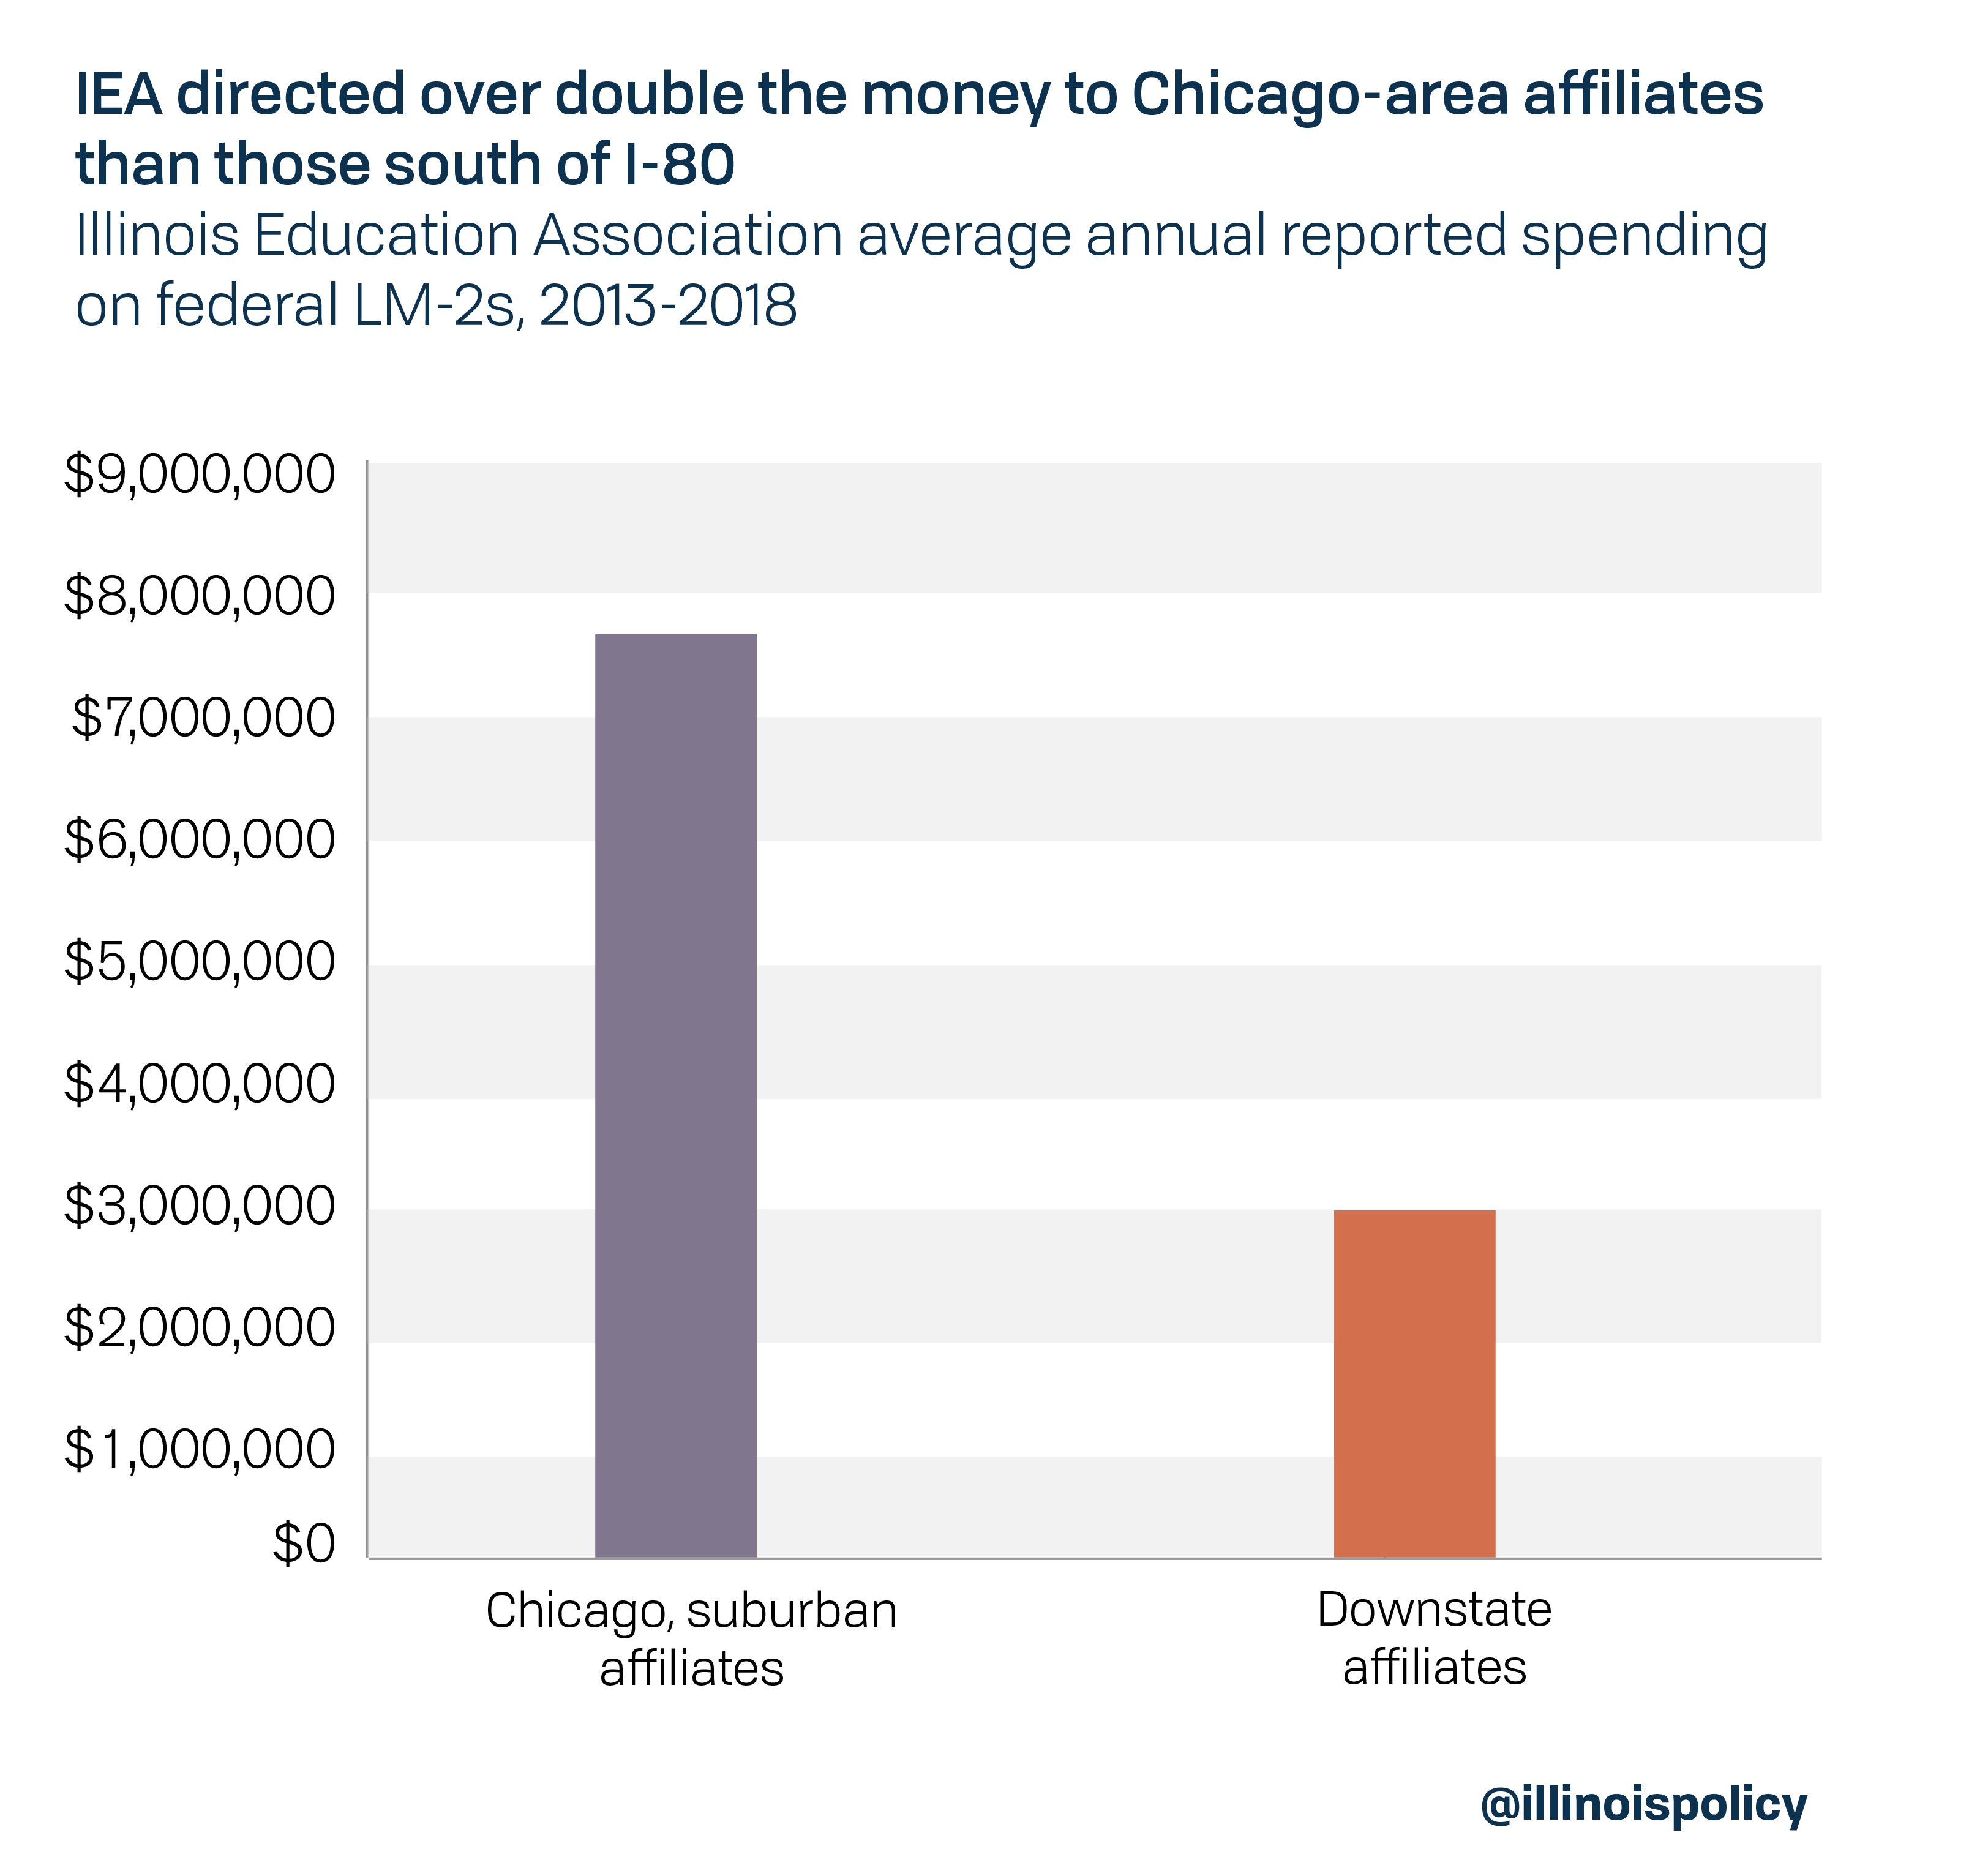 IEA directed over double the money to Chicago-area affiliates than those south of I-80